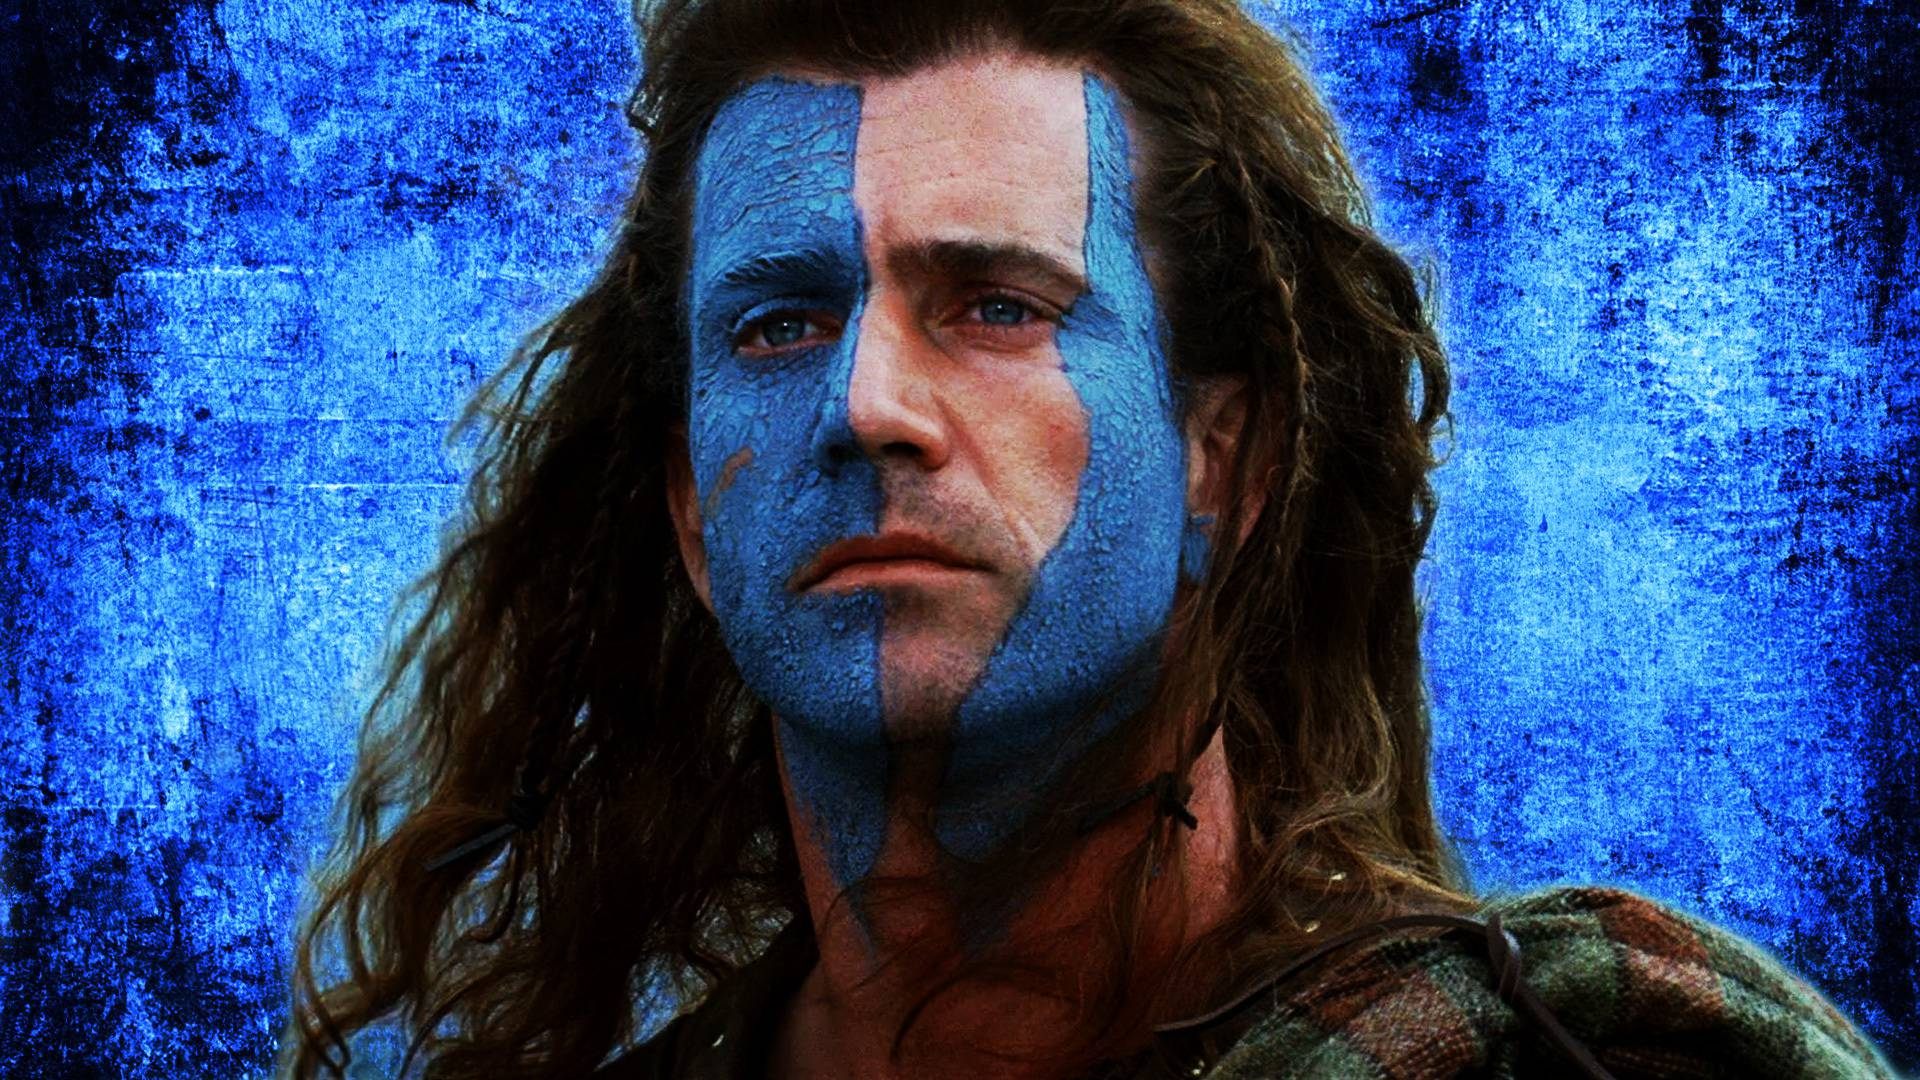 Movies__Braveheart_055418_